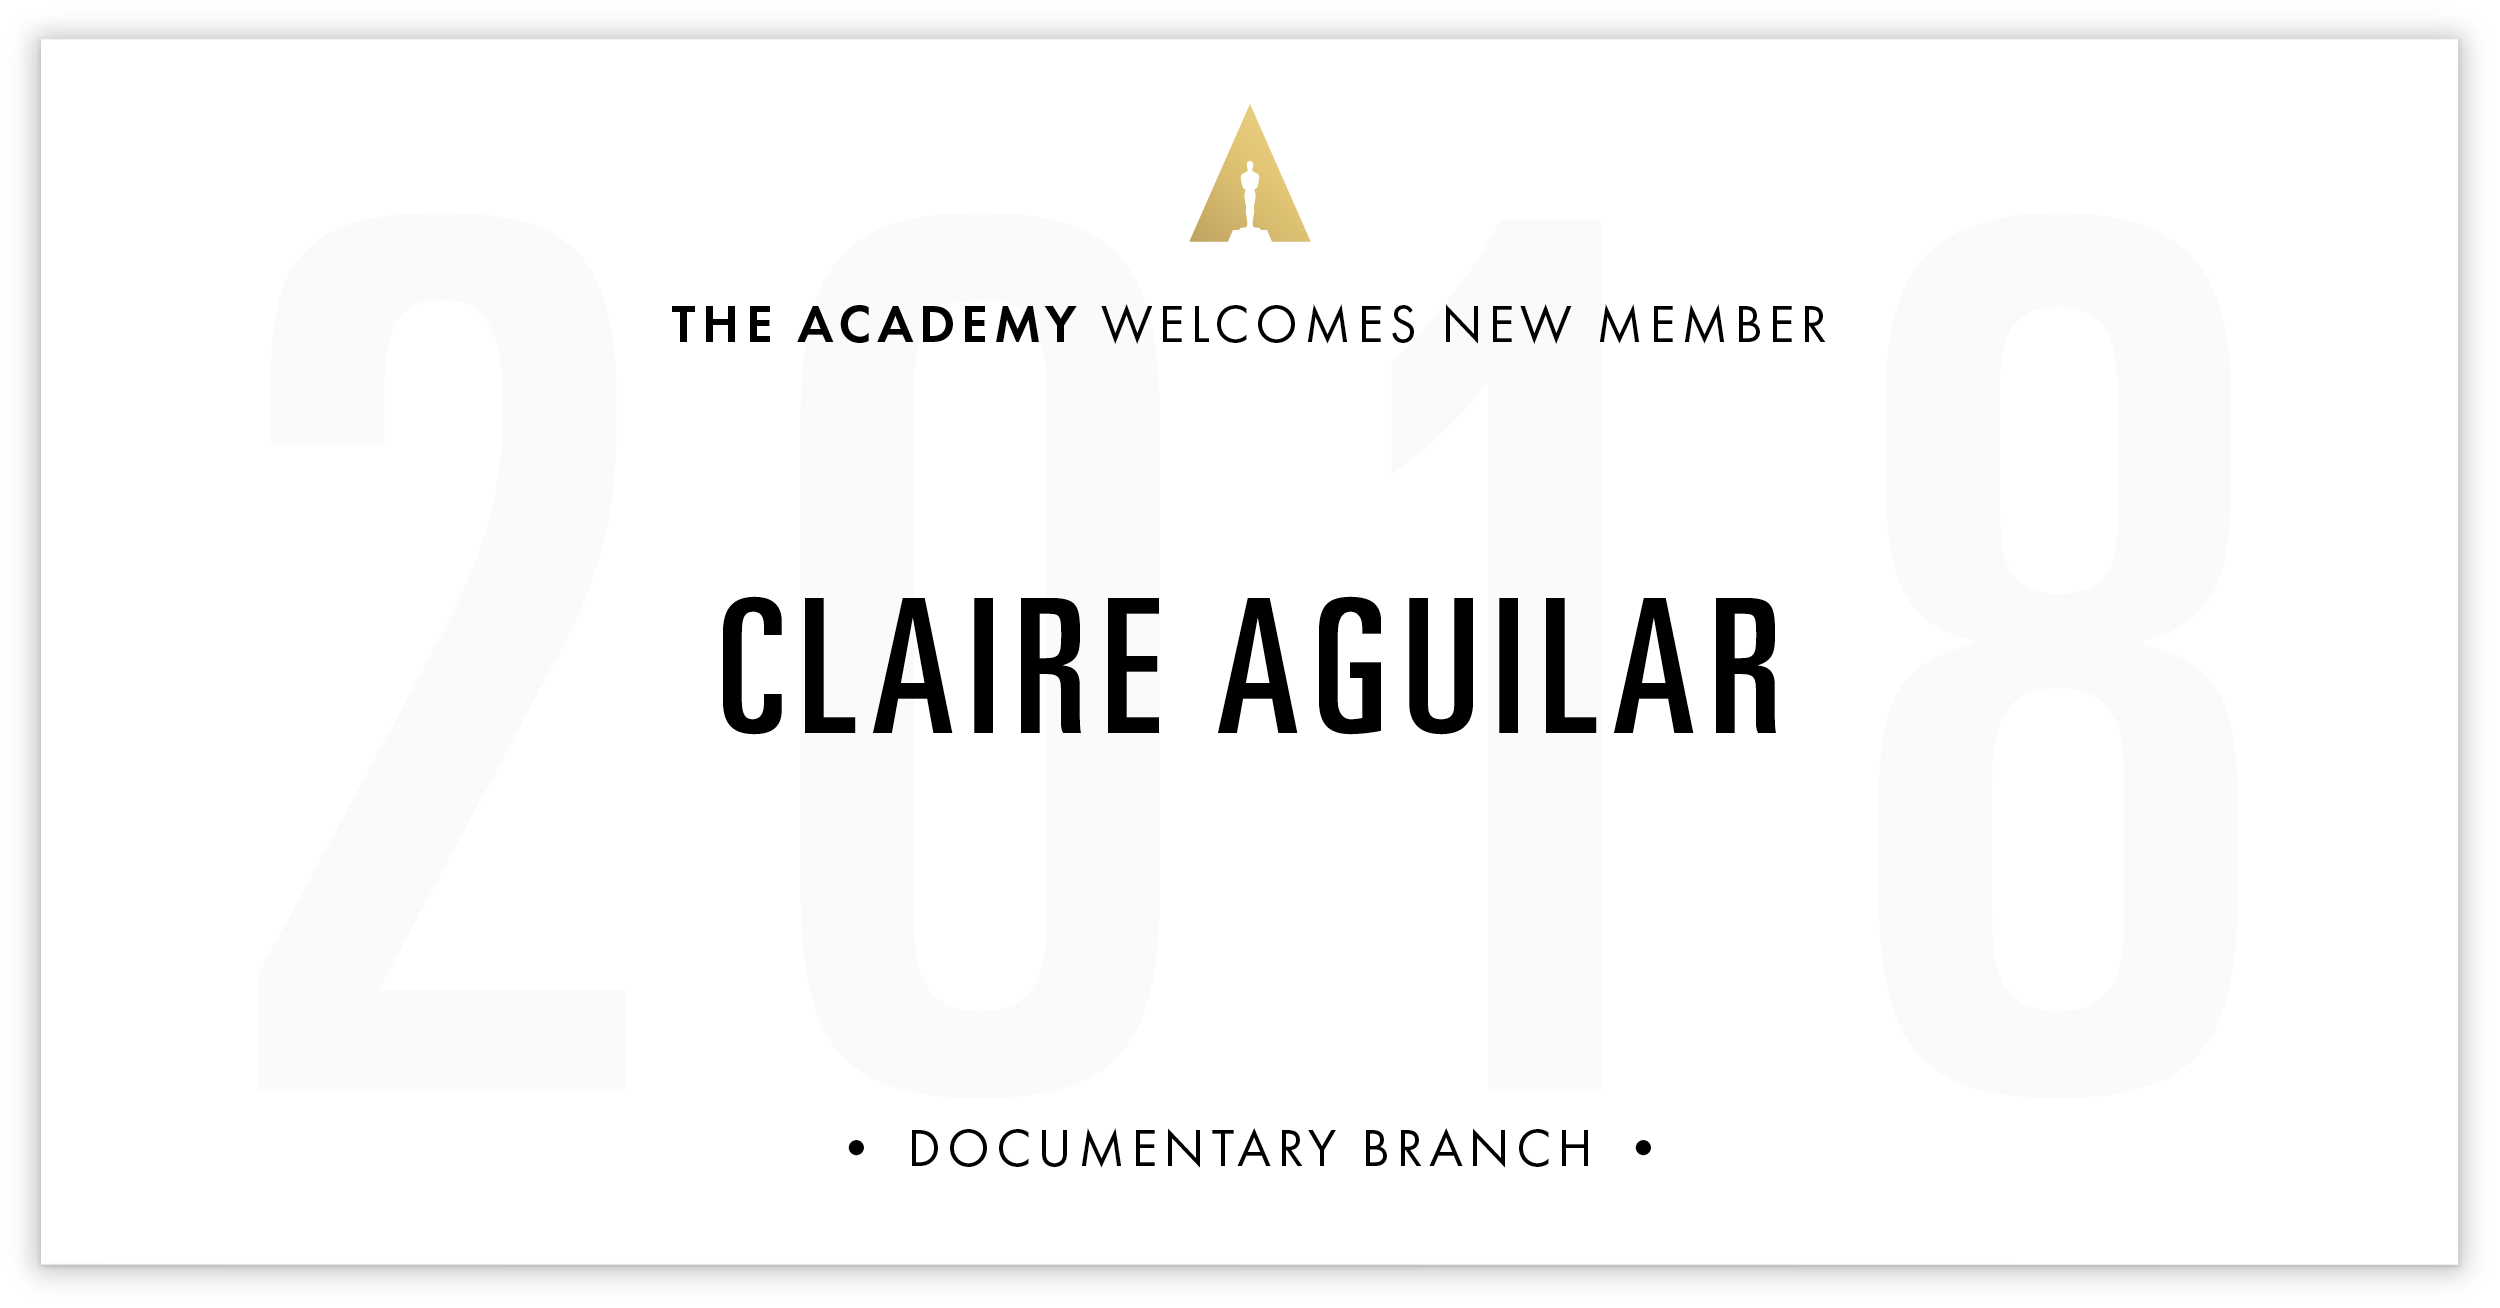 Claire Aguilar is invited!